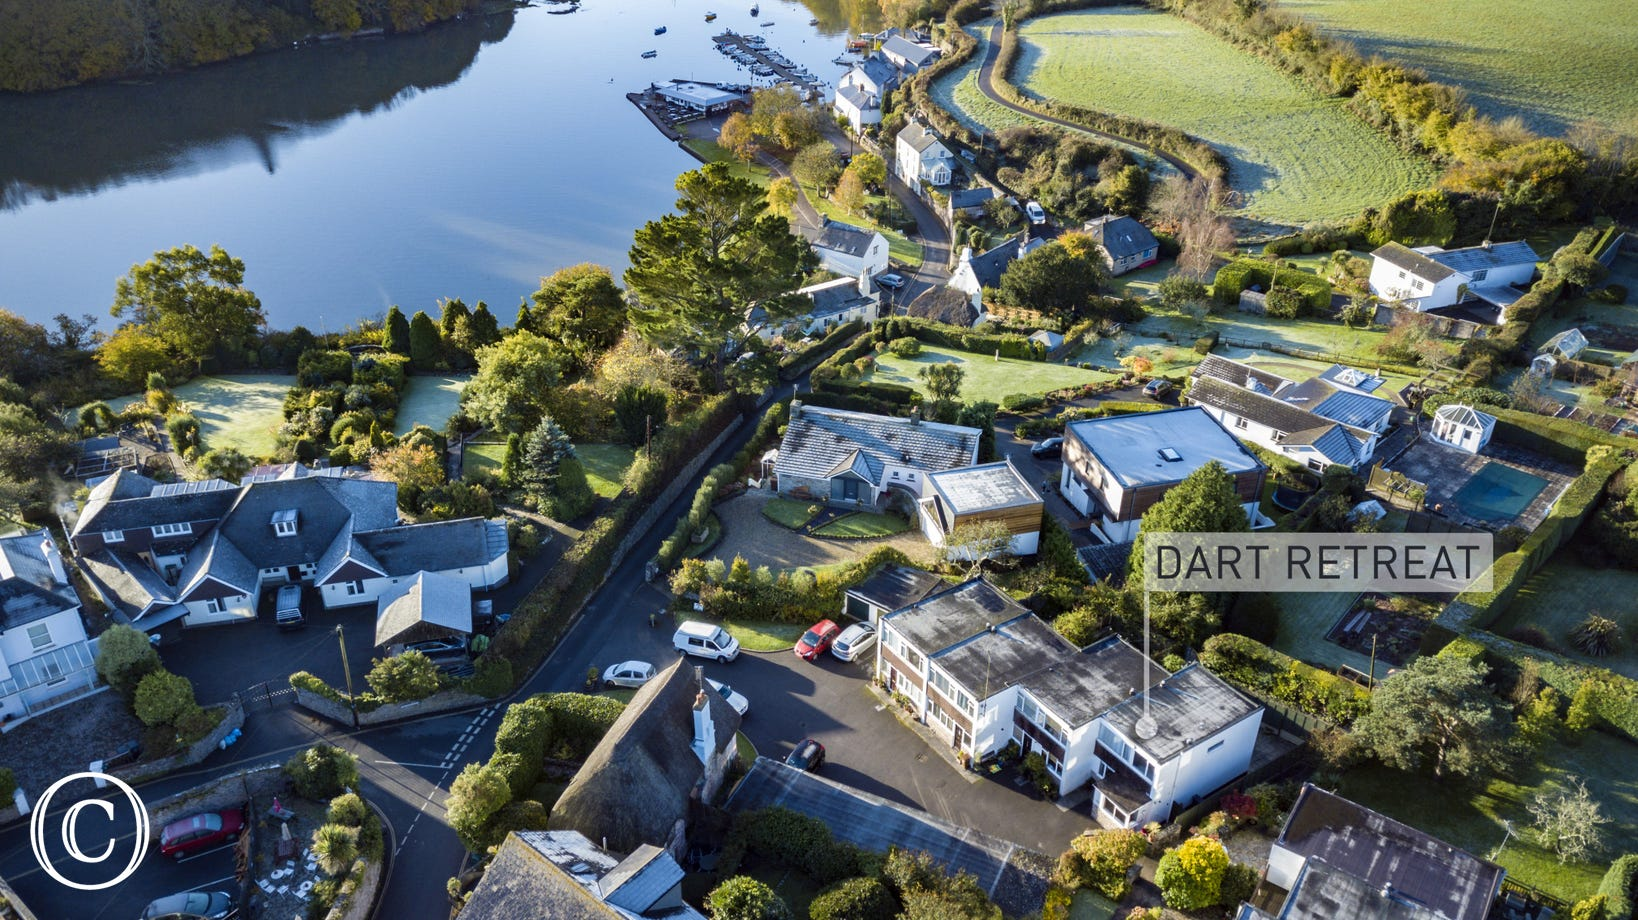 Stoke Gabriel Holiday Home close to the river Dart